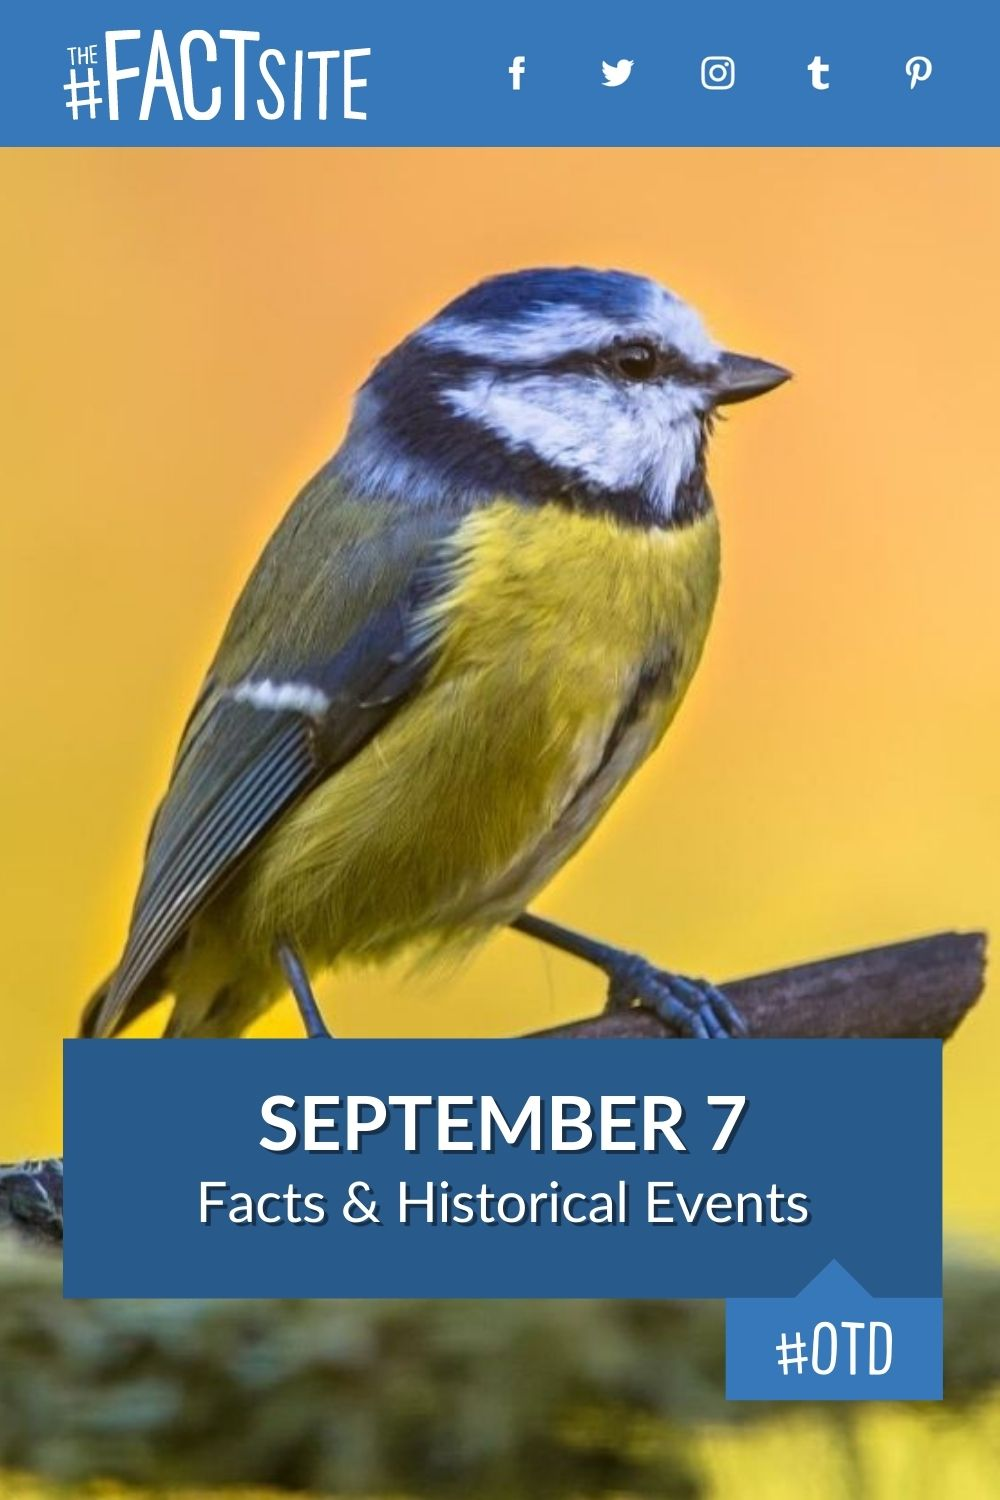 Facts & Historic Events That Happened on September 7